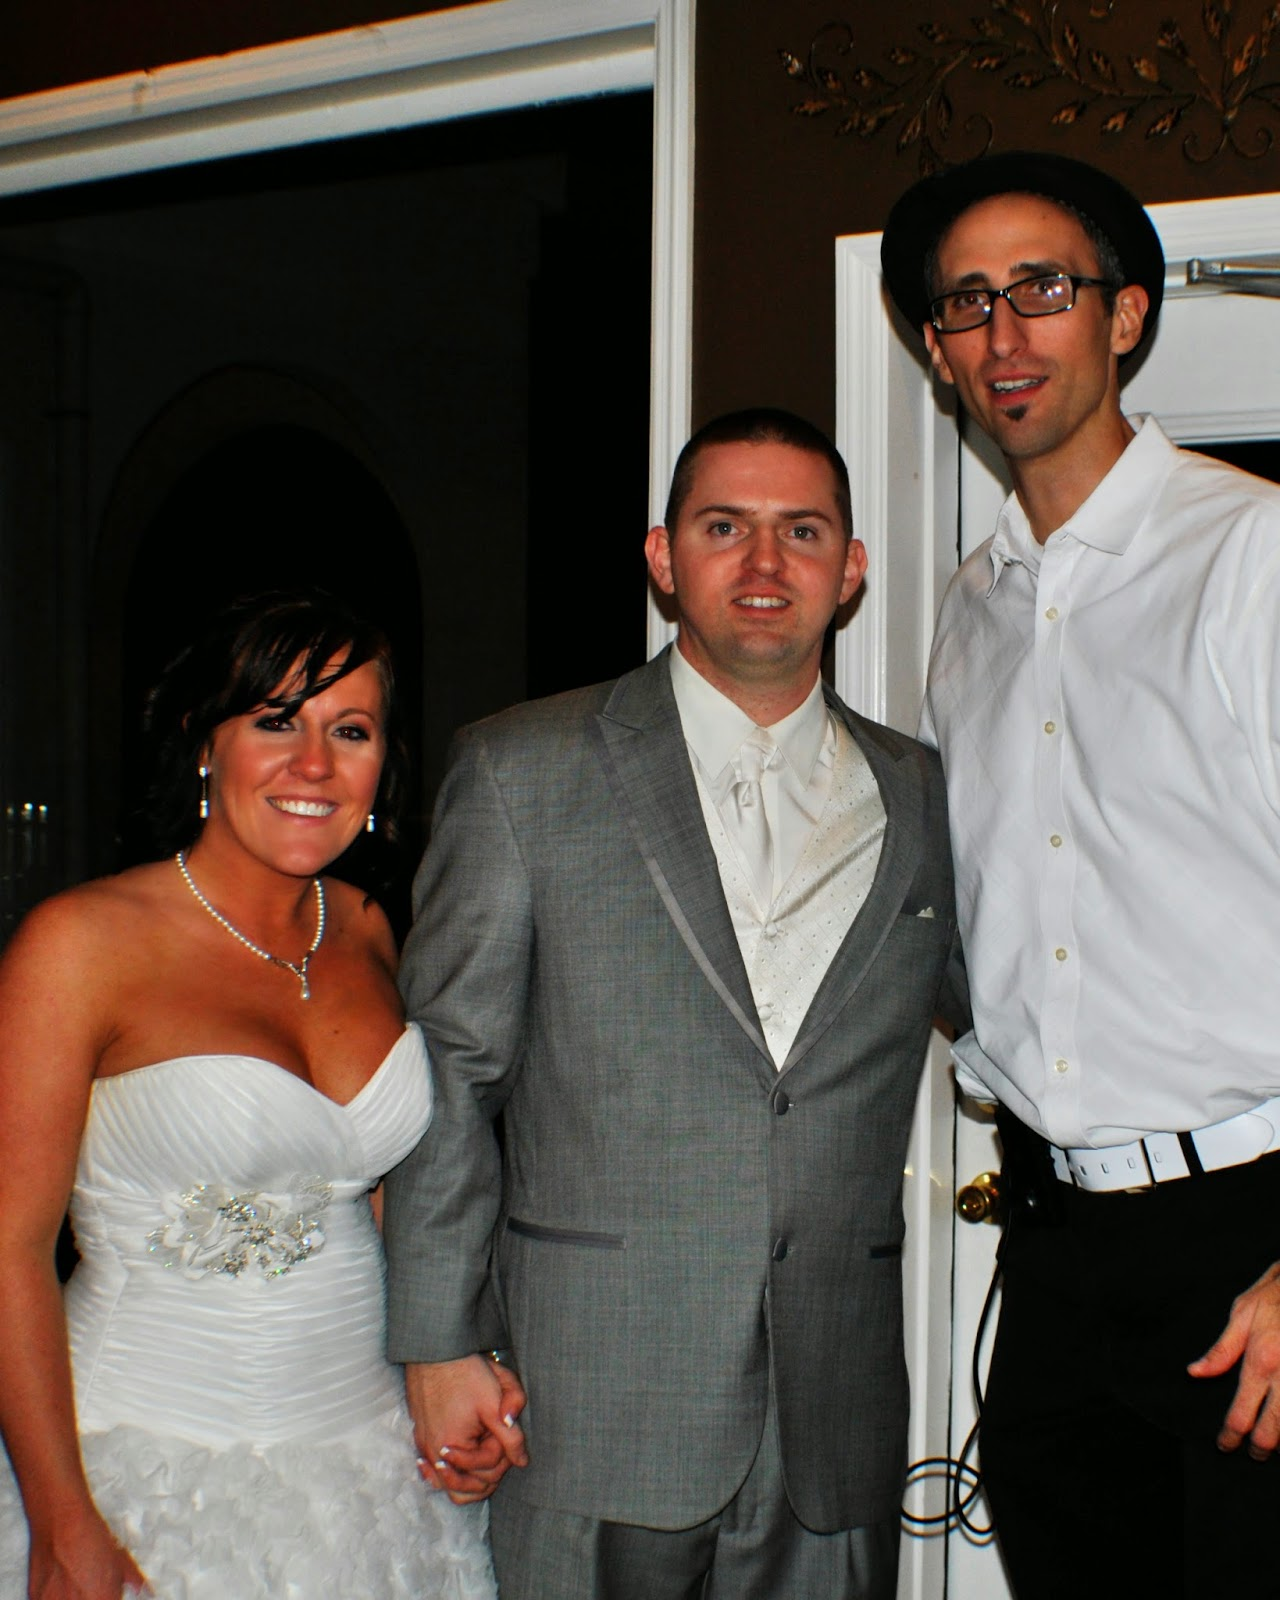 With Class LLC Wedding Coordination Party DJ - The Tennessee RiverPlace - Chattanooga, TN - DJ Mark